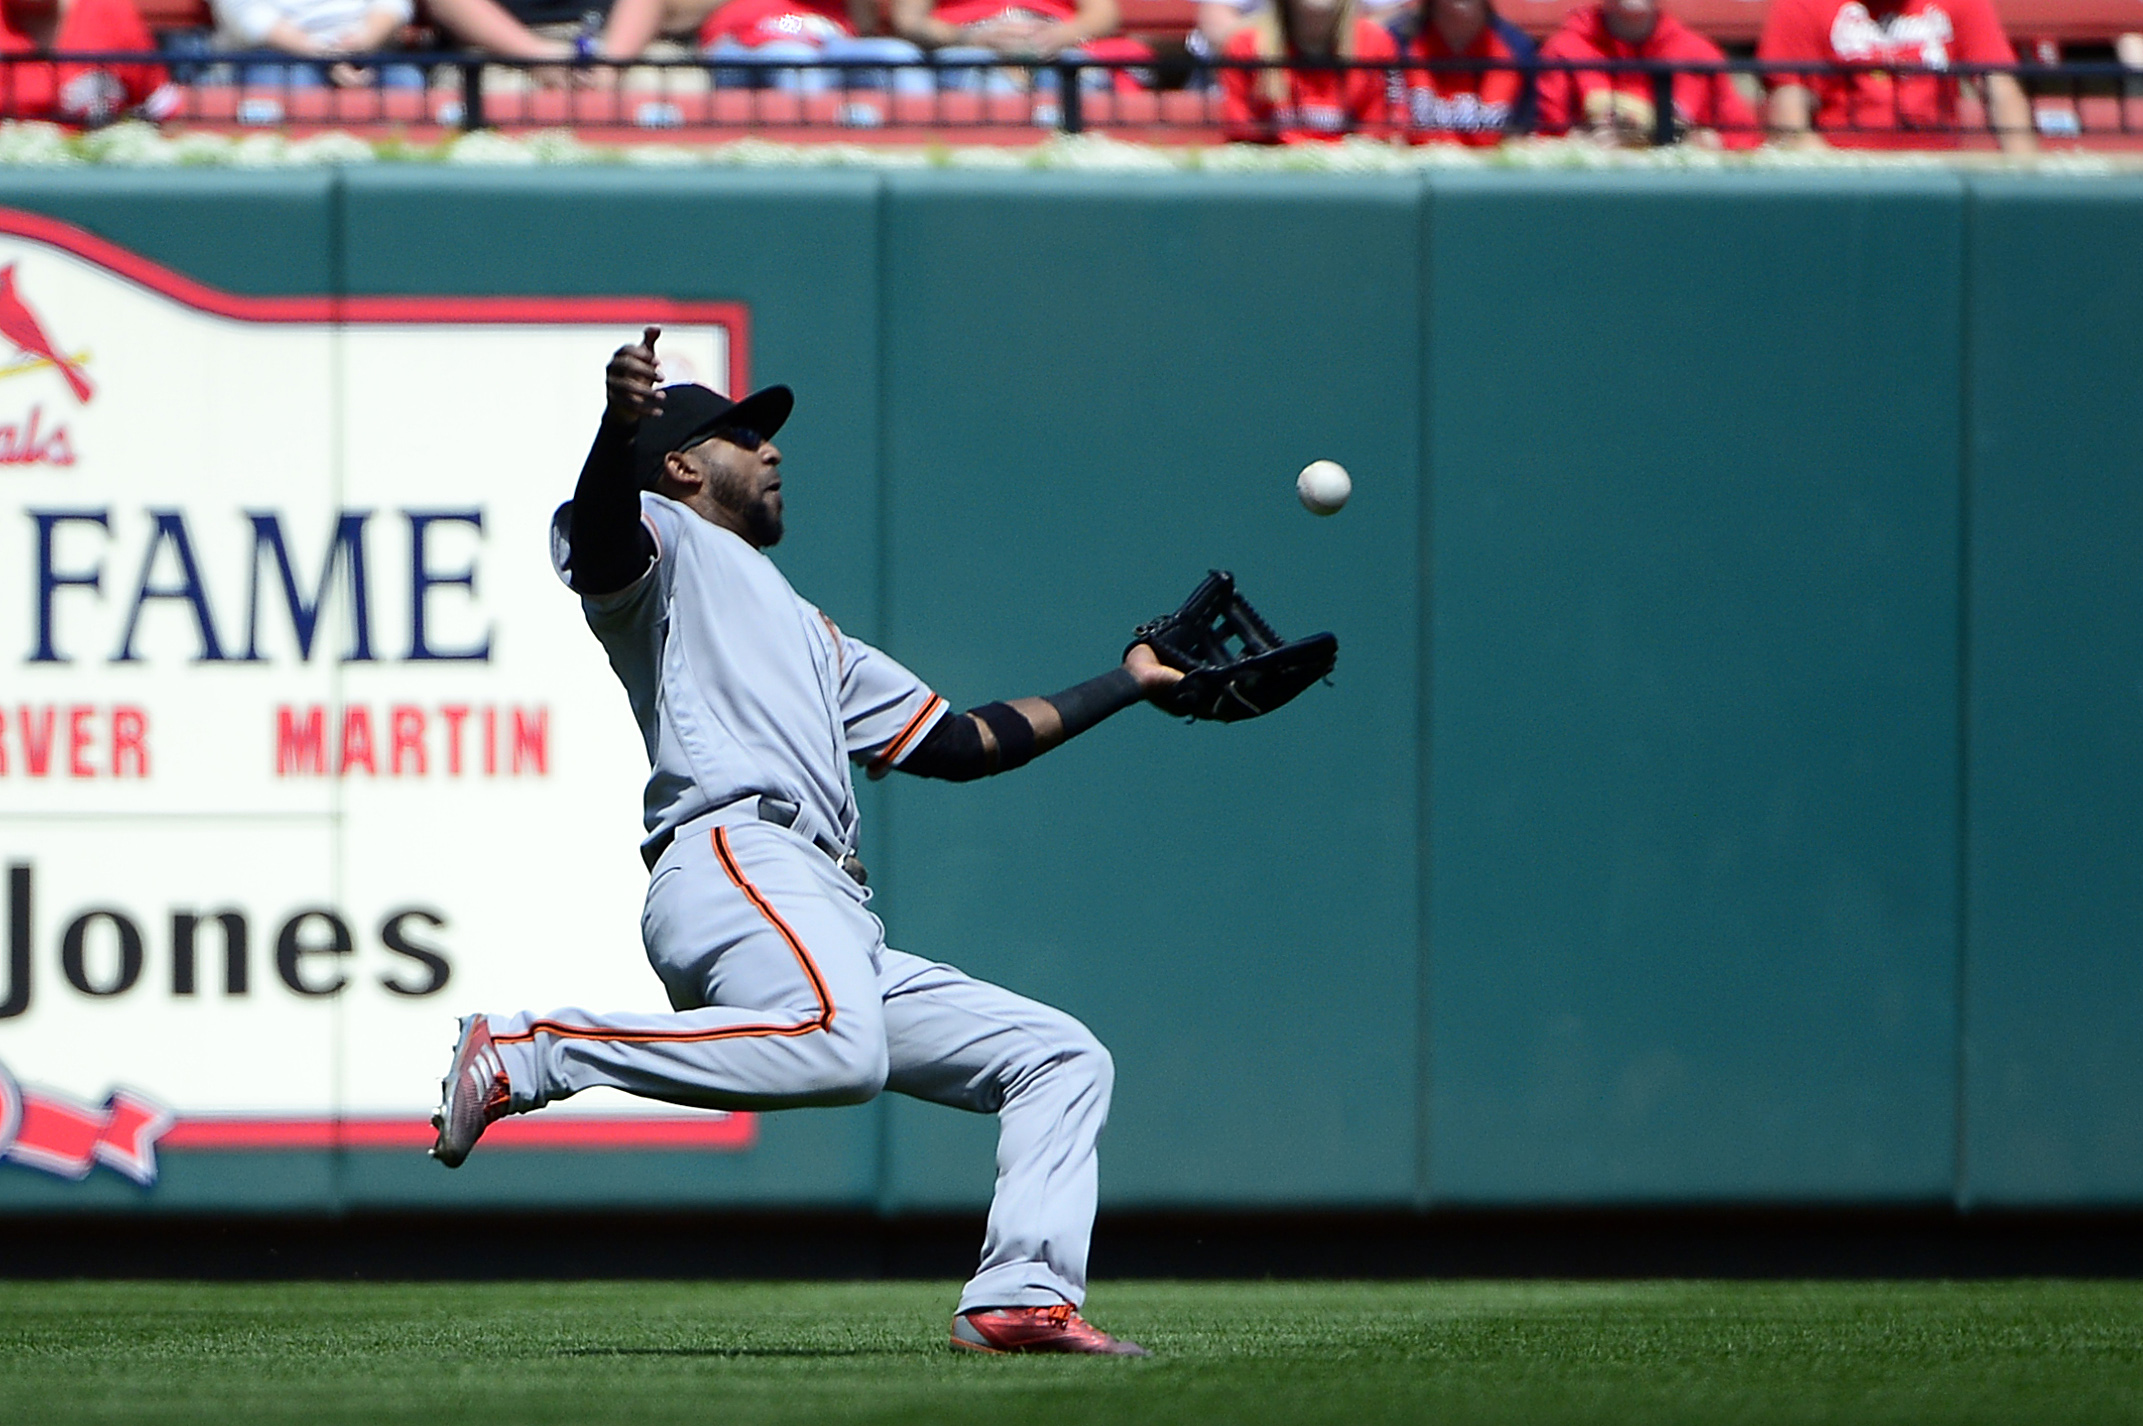 10068562-mlb-san-francisco-giants-at-st.-louis-cardinals